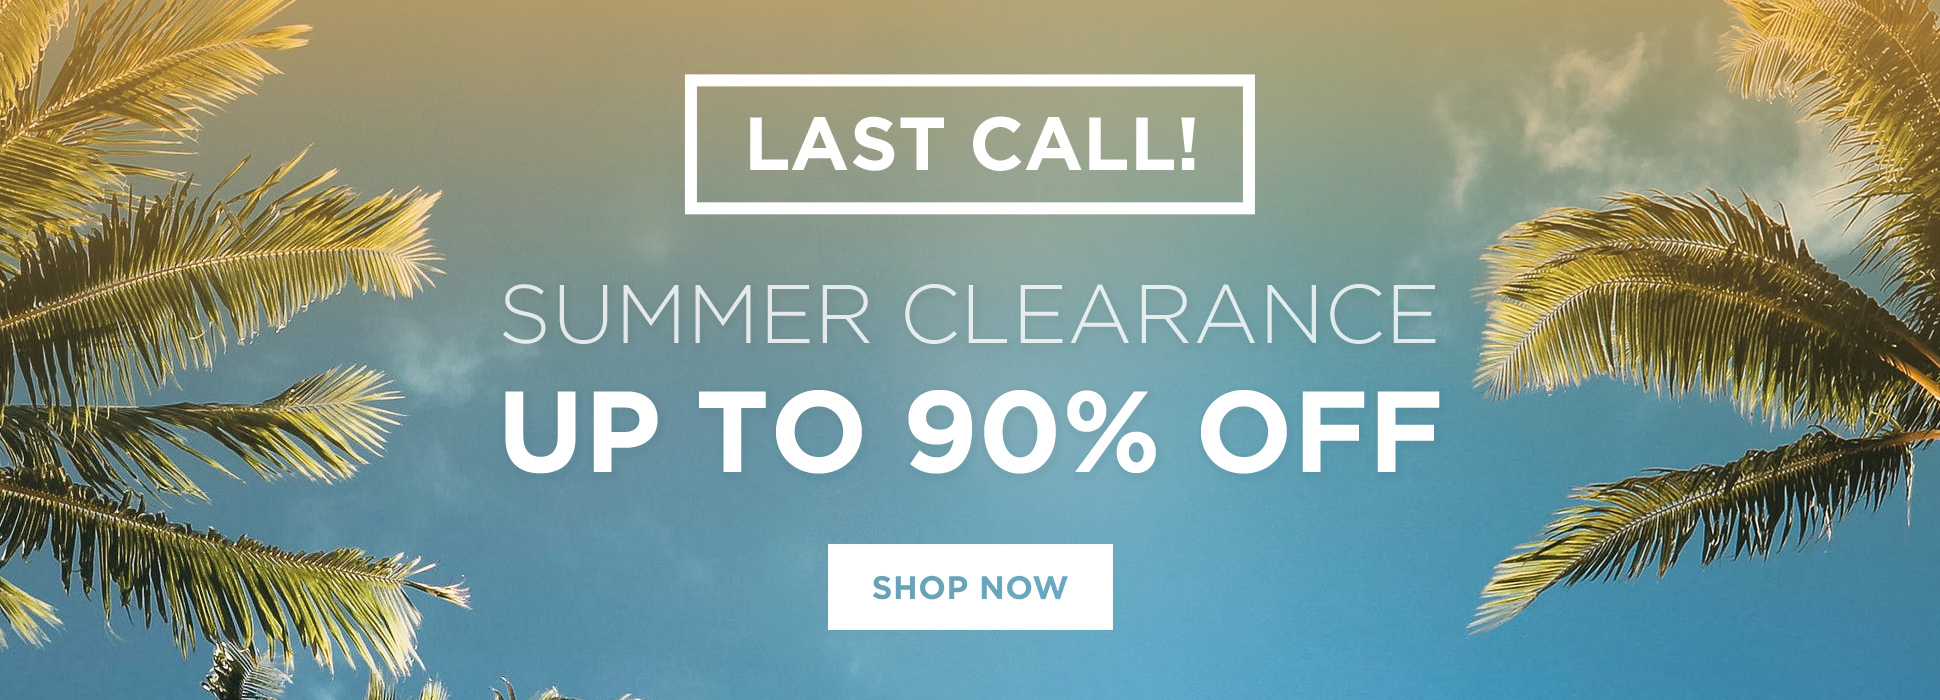 Summer Clearance Last Call (Banners)